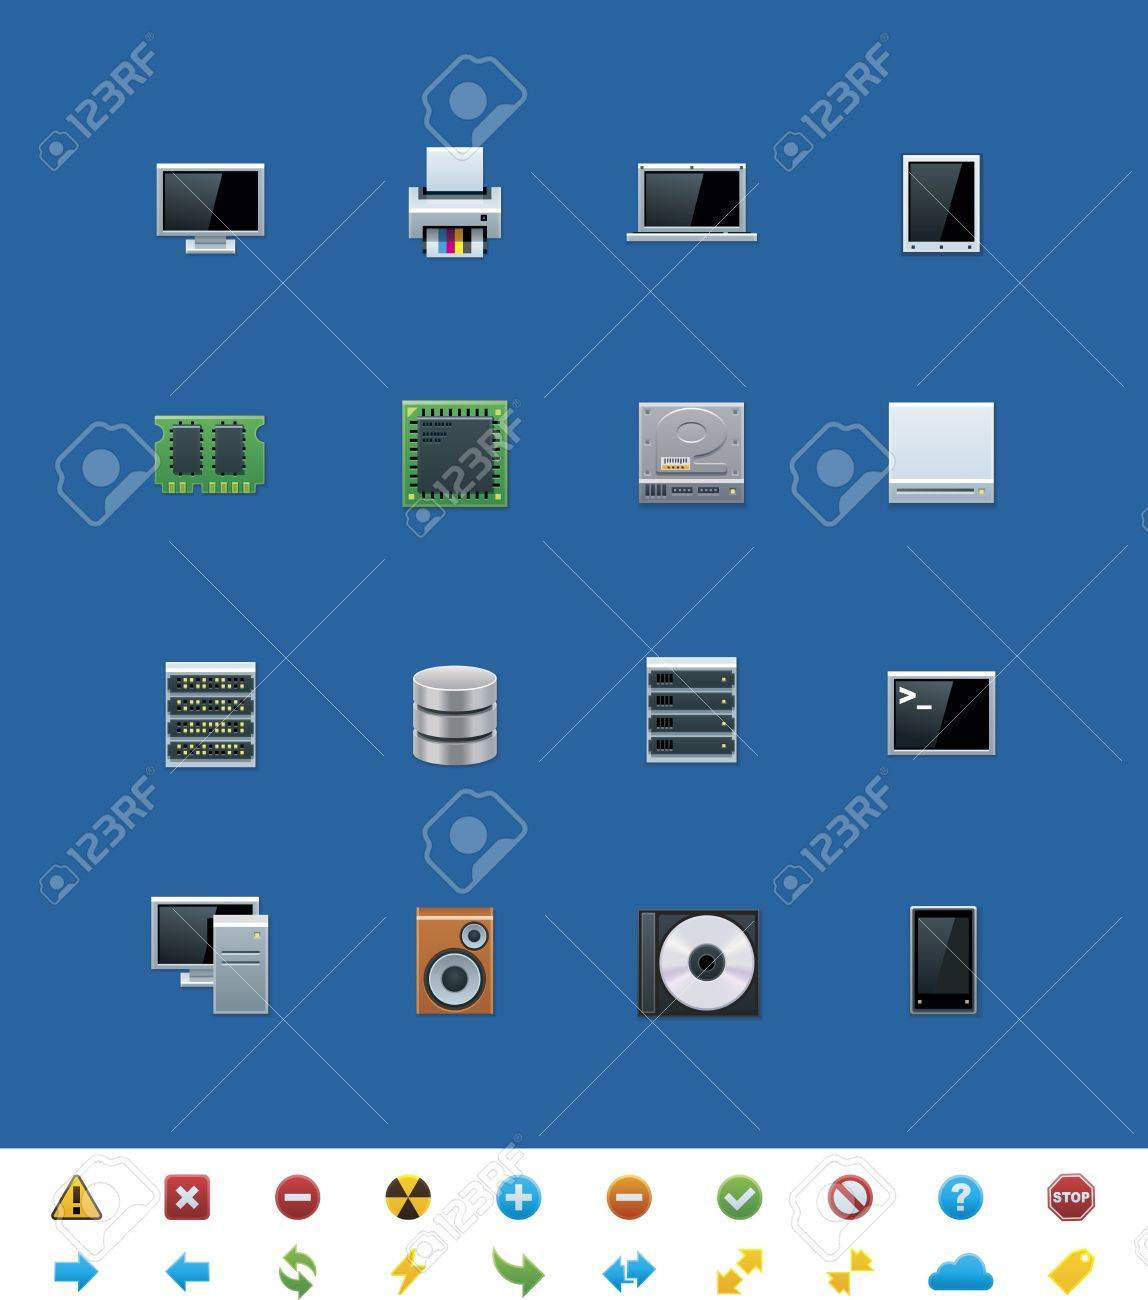 common website icons. Hardware Stock Vector - 14947014